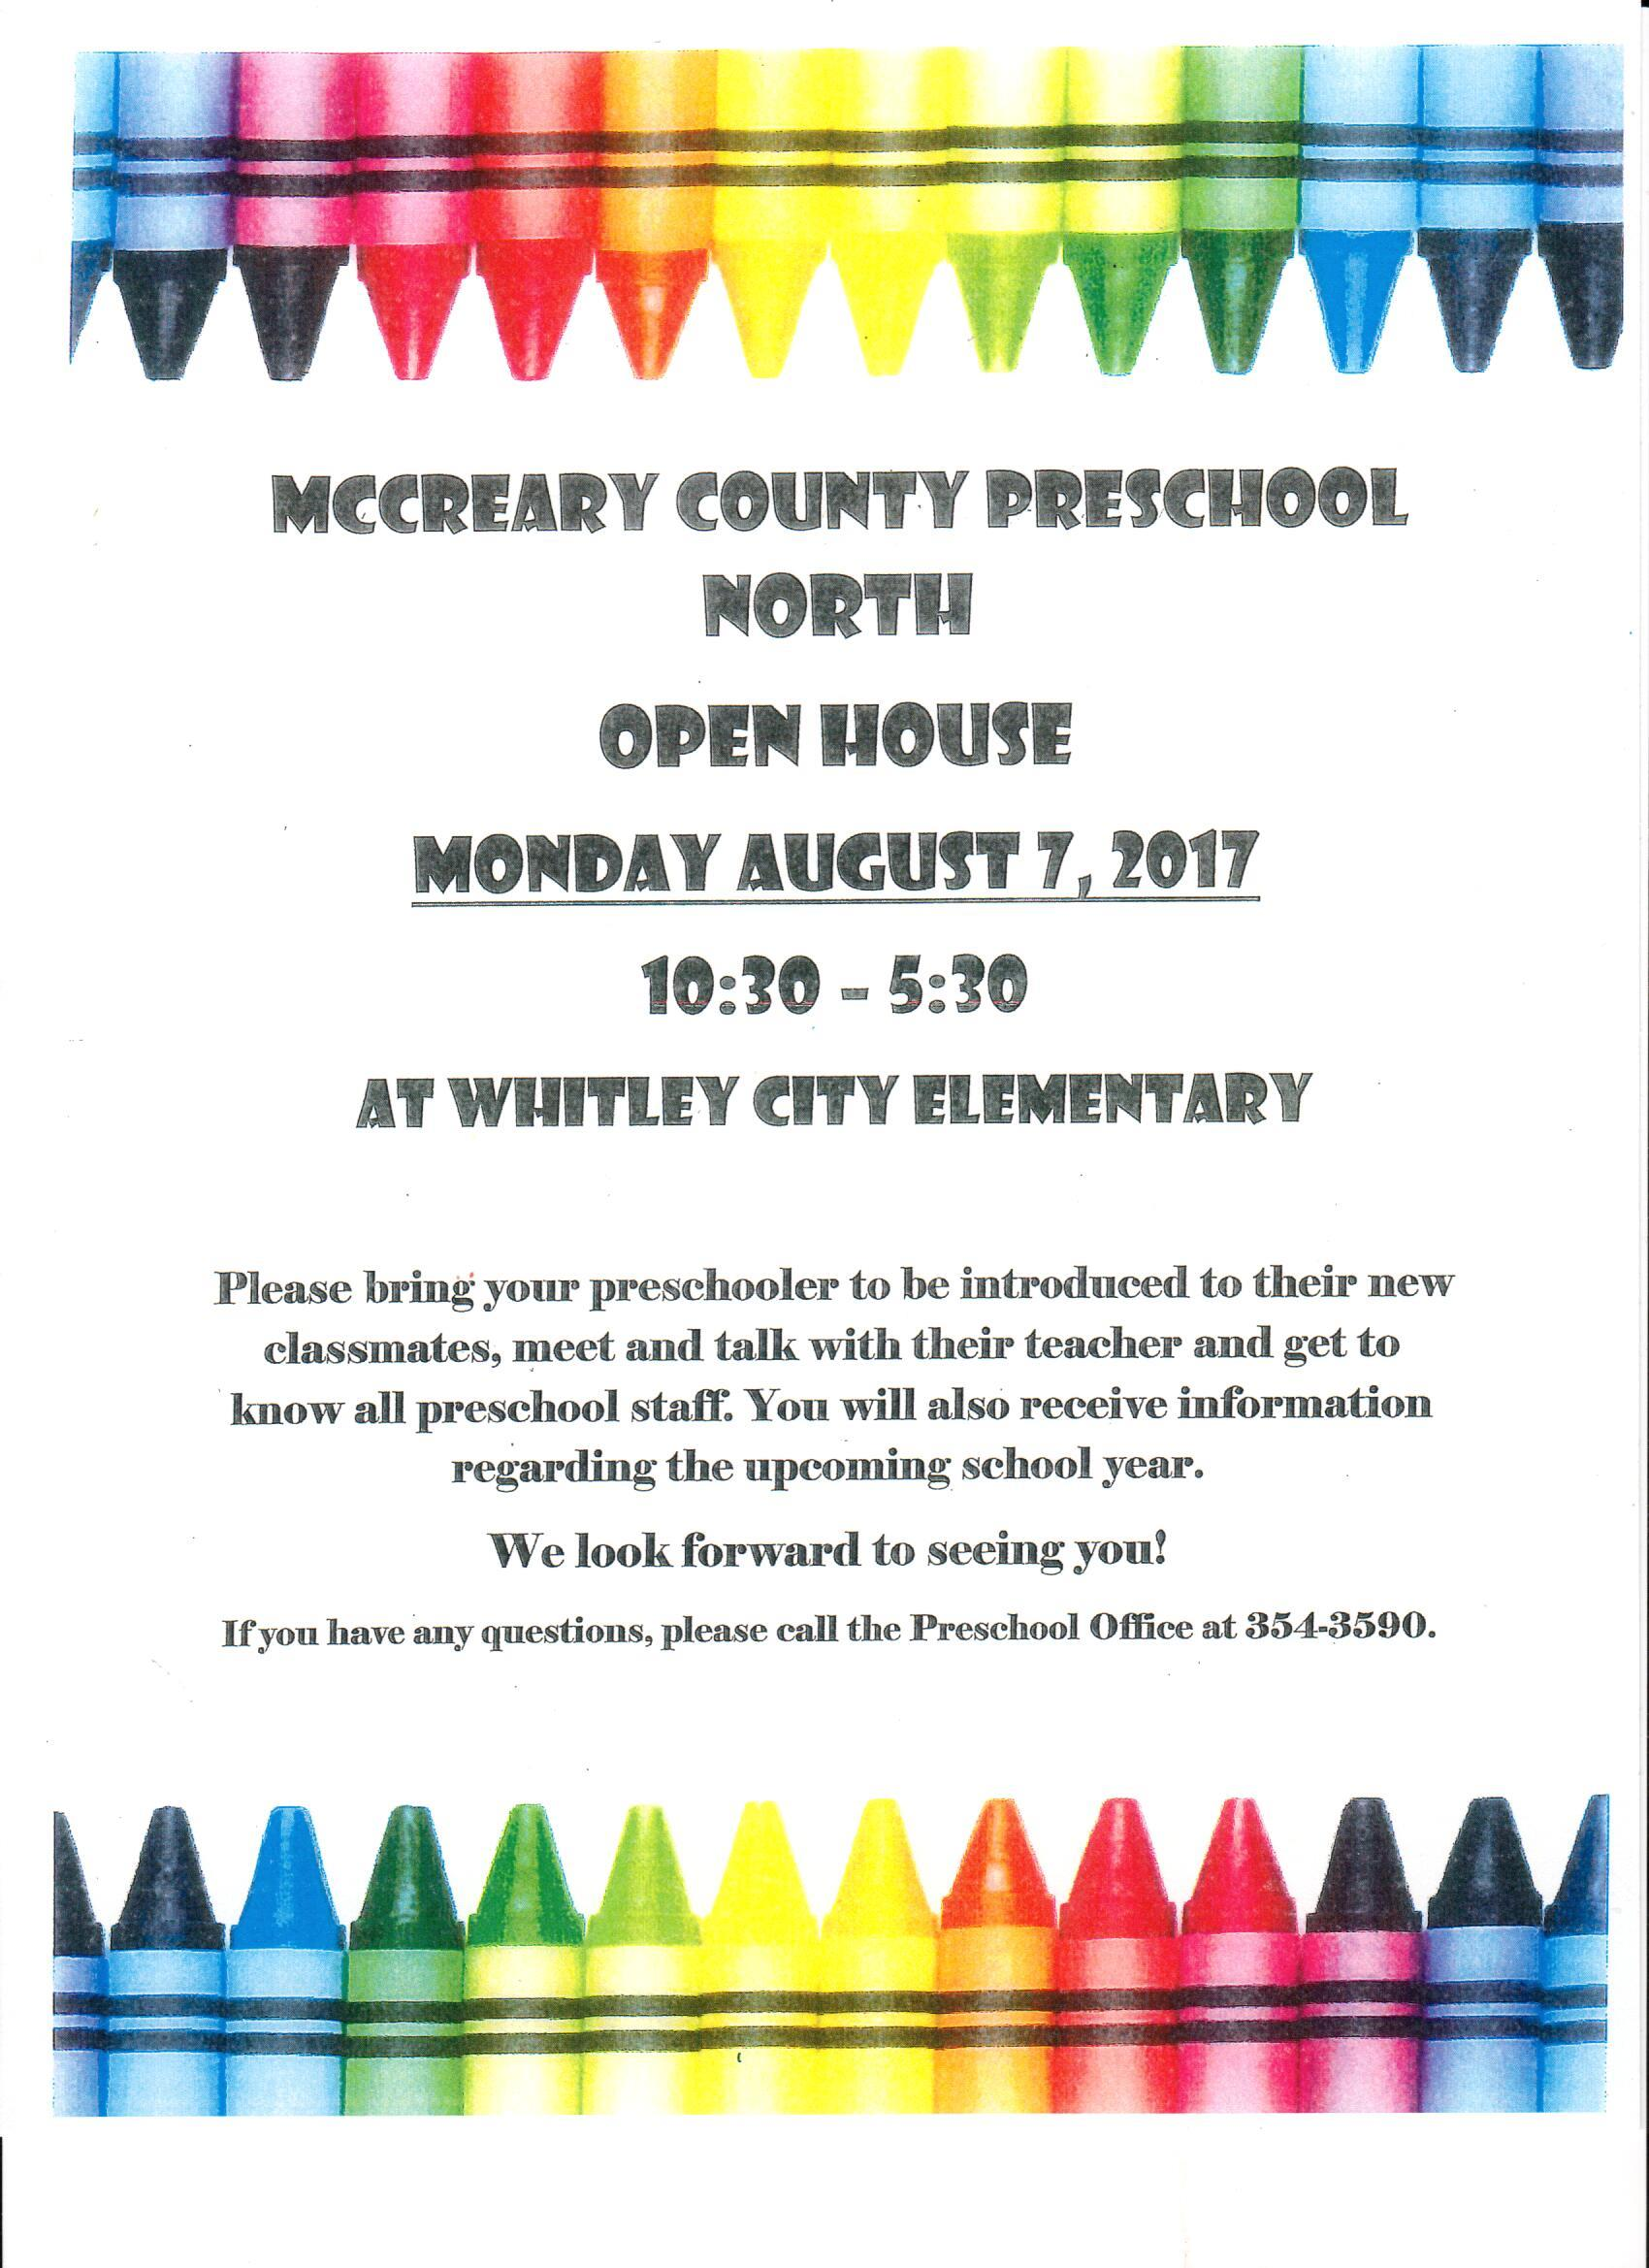 August 7, 2017 at Whitley City Elementary